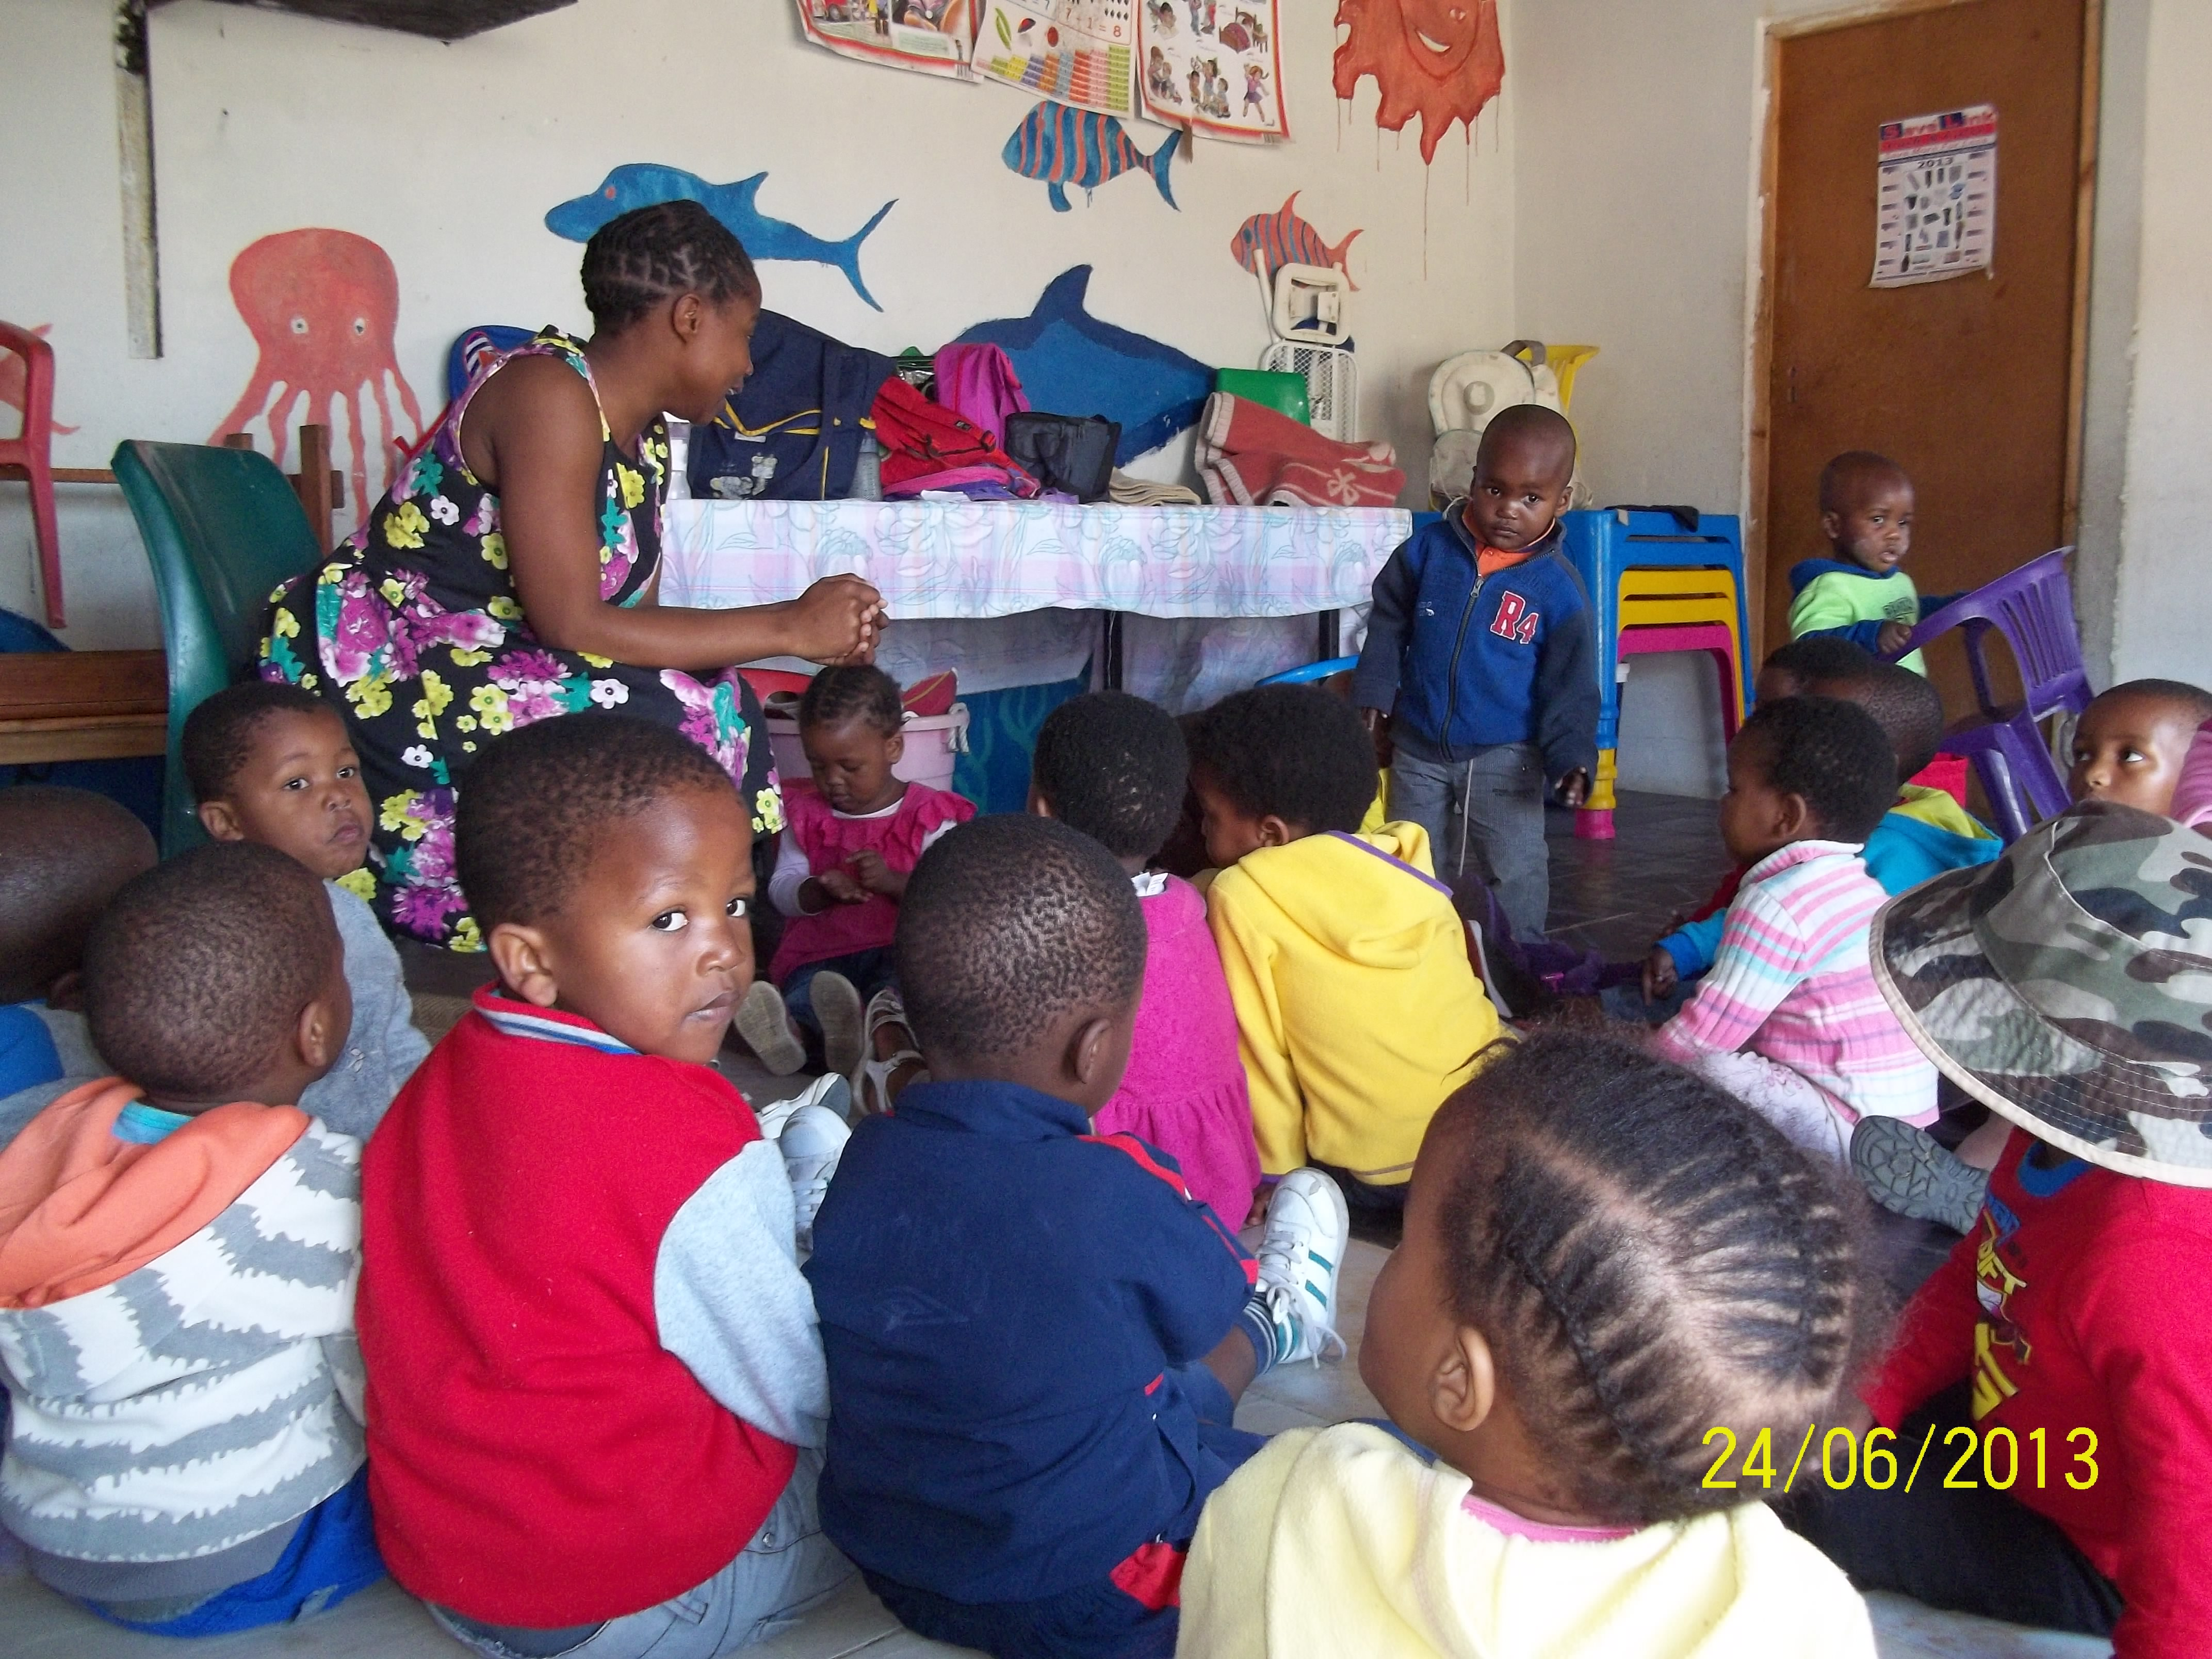 monday-busi-leading-22story-time22-at-the-crc3a8che1